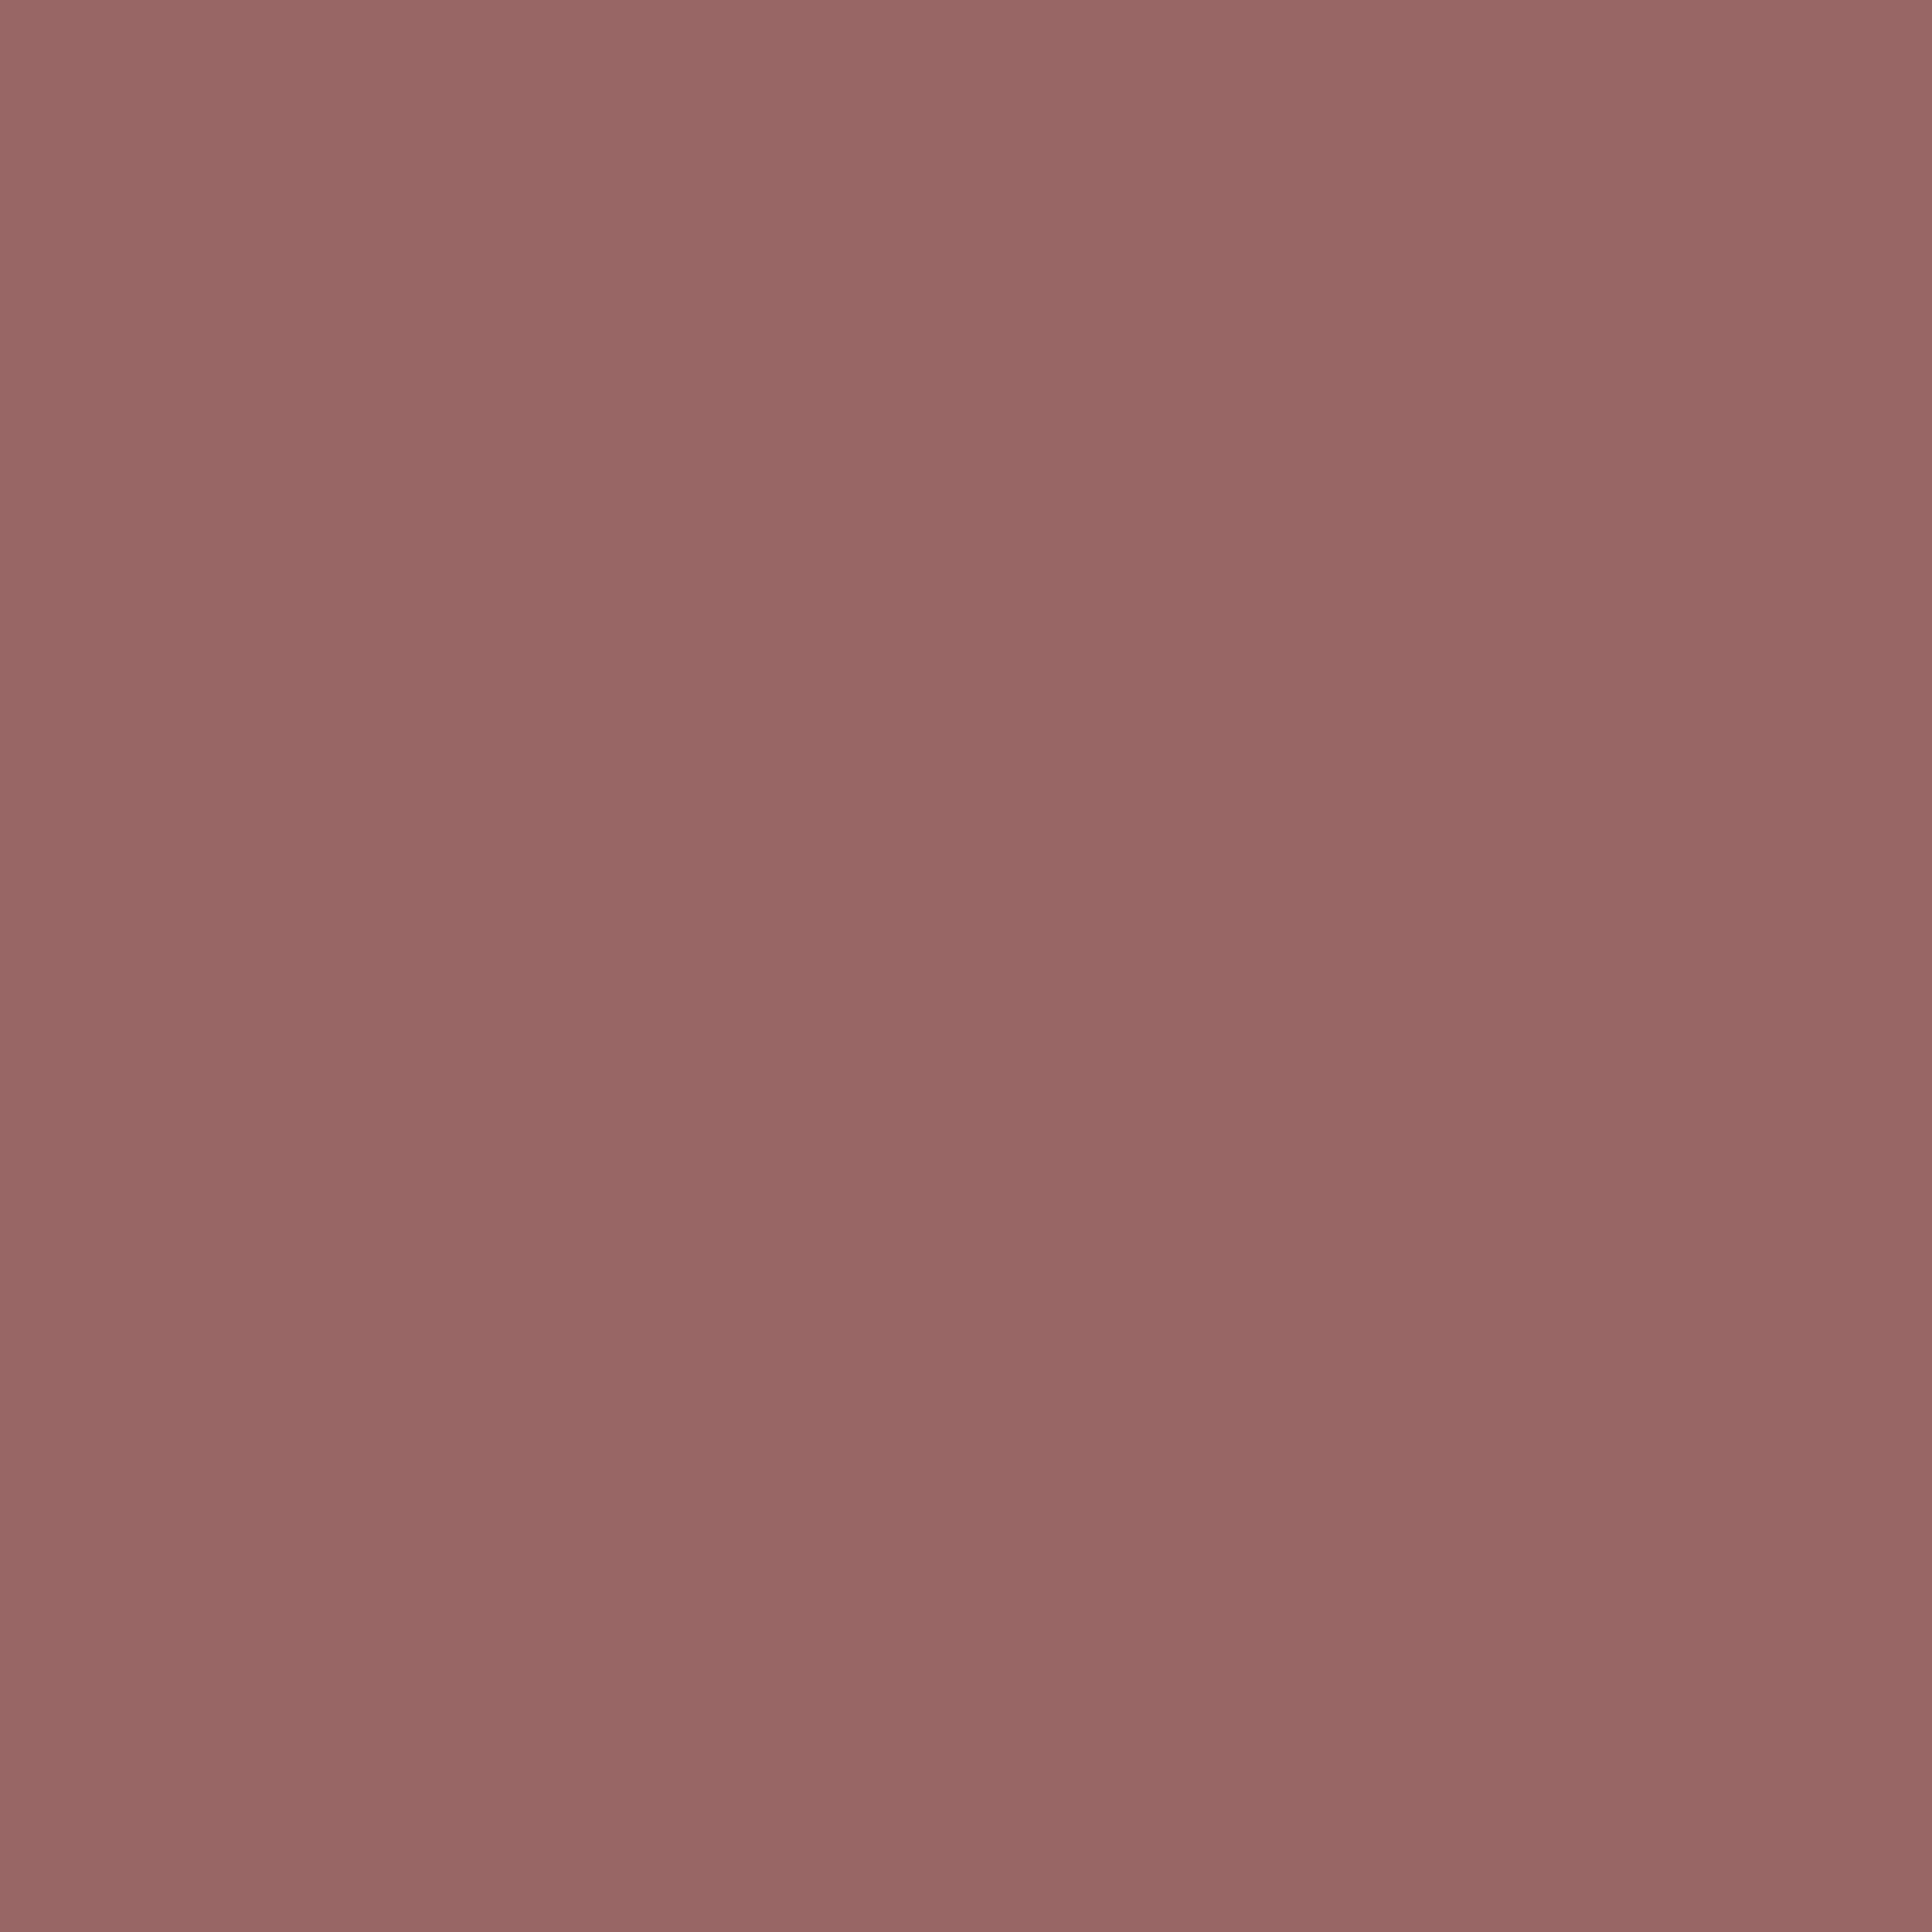 2048x2048 Copper Rose Solid Color Background